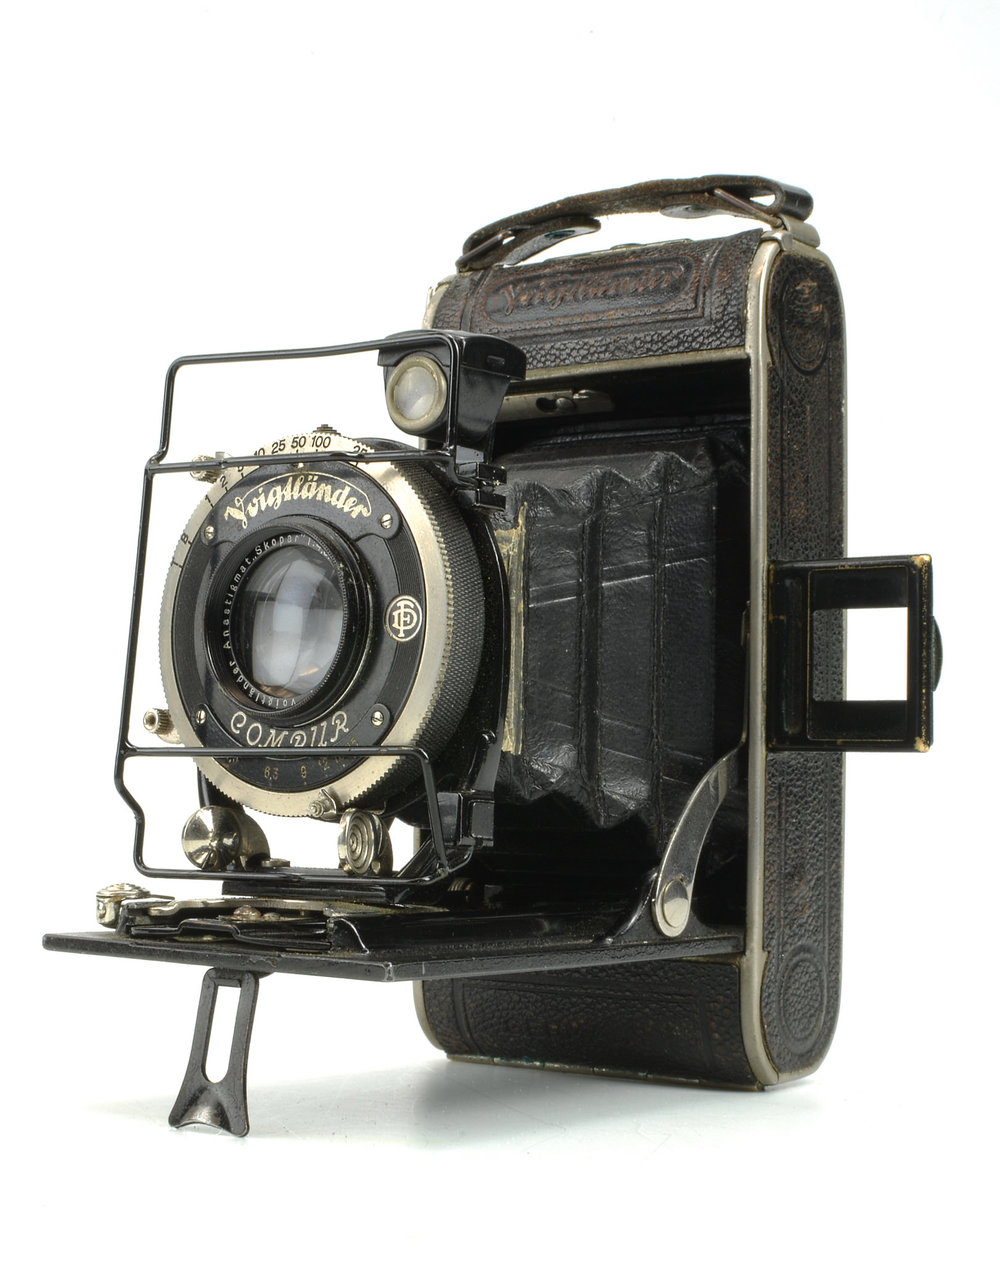 1937 Voigtlander Bessa - I have a future blog about this camera and all of the adventures its seen over its lifetime. The fact that this was the height of technology in its day and you framed your image with the small square piece on the right meant you had to know what you were doing back in the day to get the shot.